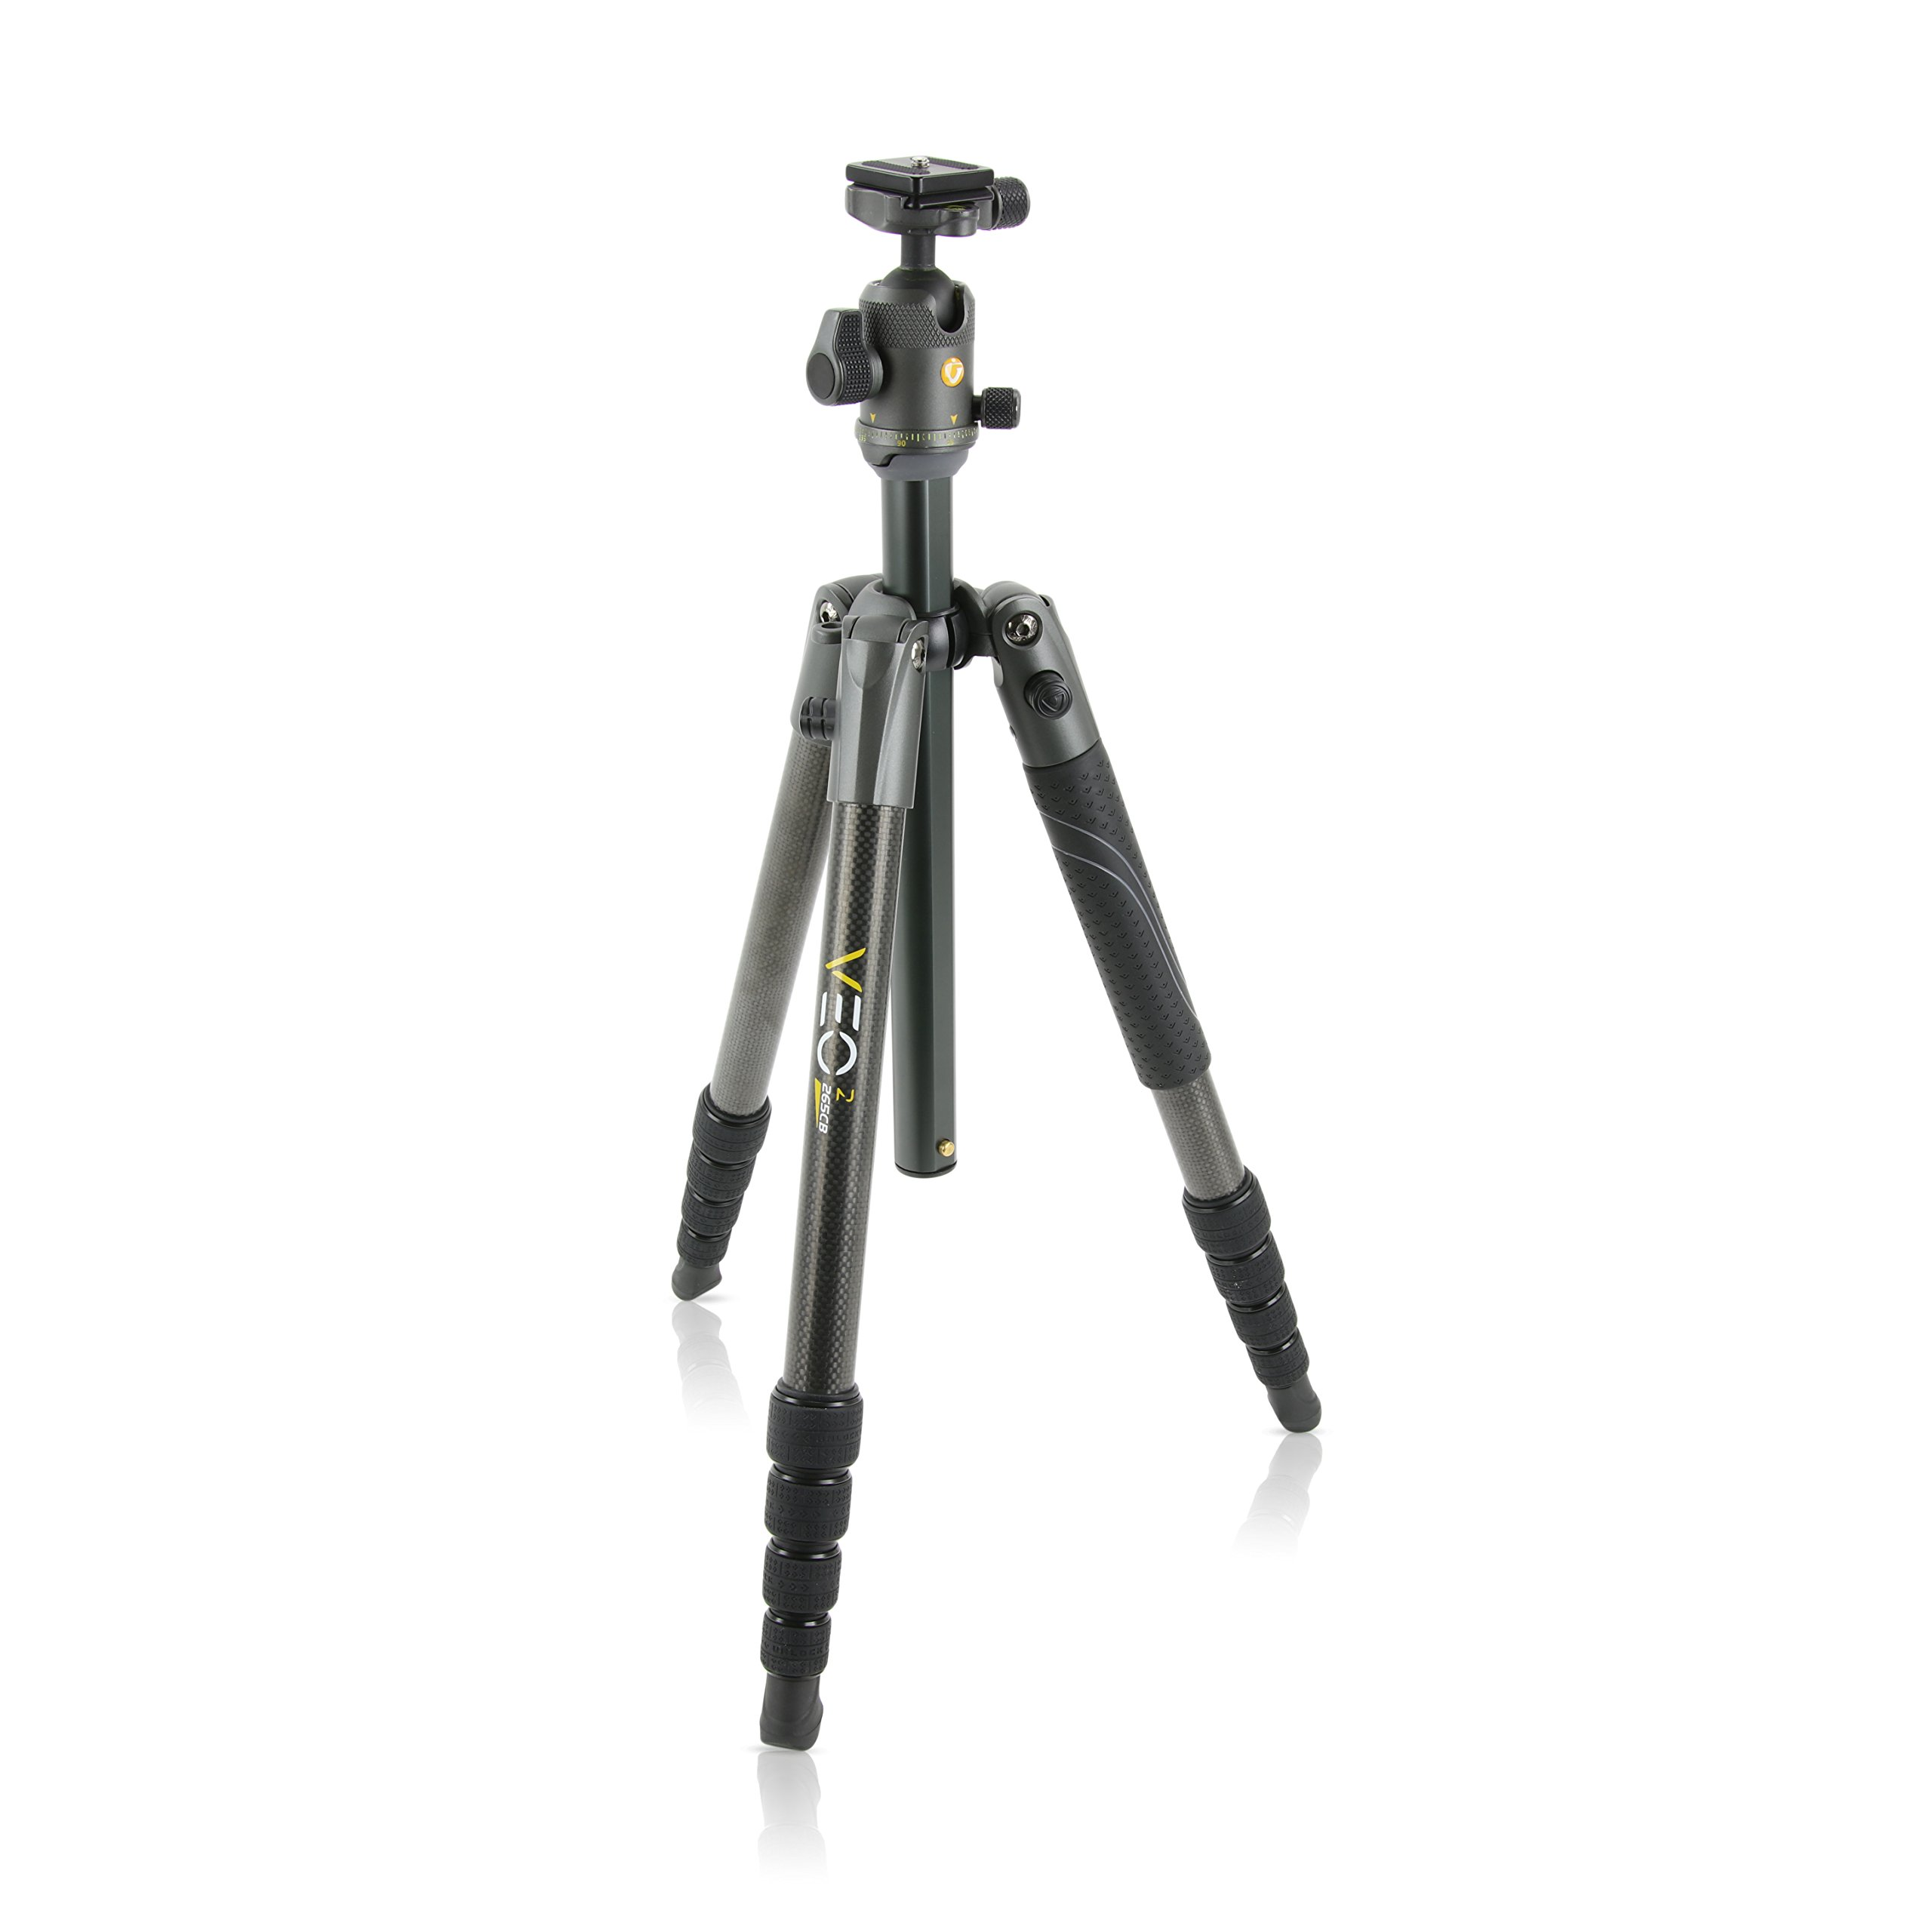 Vanguard VEO 2 265CB Carbon Fiber Travel Tripod with VEO 2 BH-50 Ball Head for Sony, Nikon, Canon, Fujifilm Mirrorless, Compact System Camera (CSC), DSLR by Vanguard